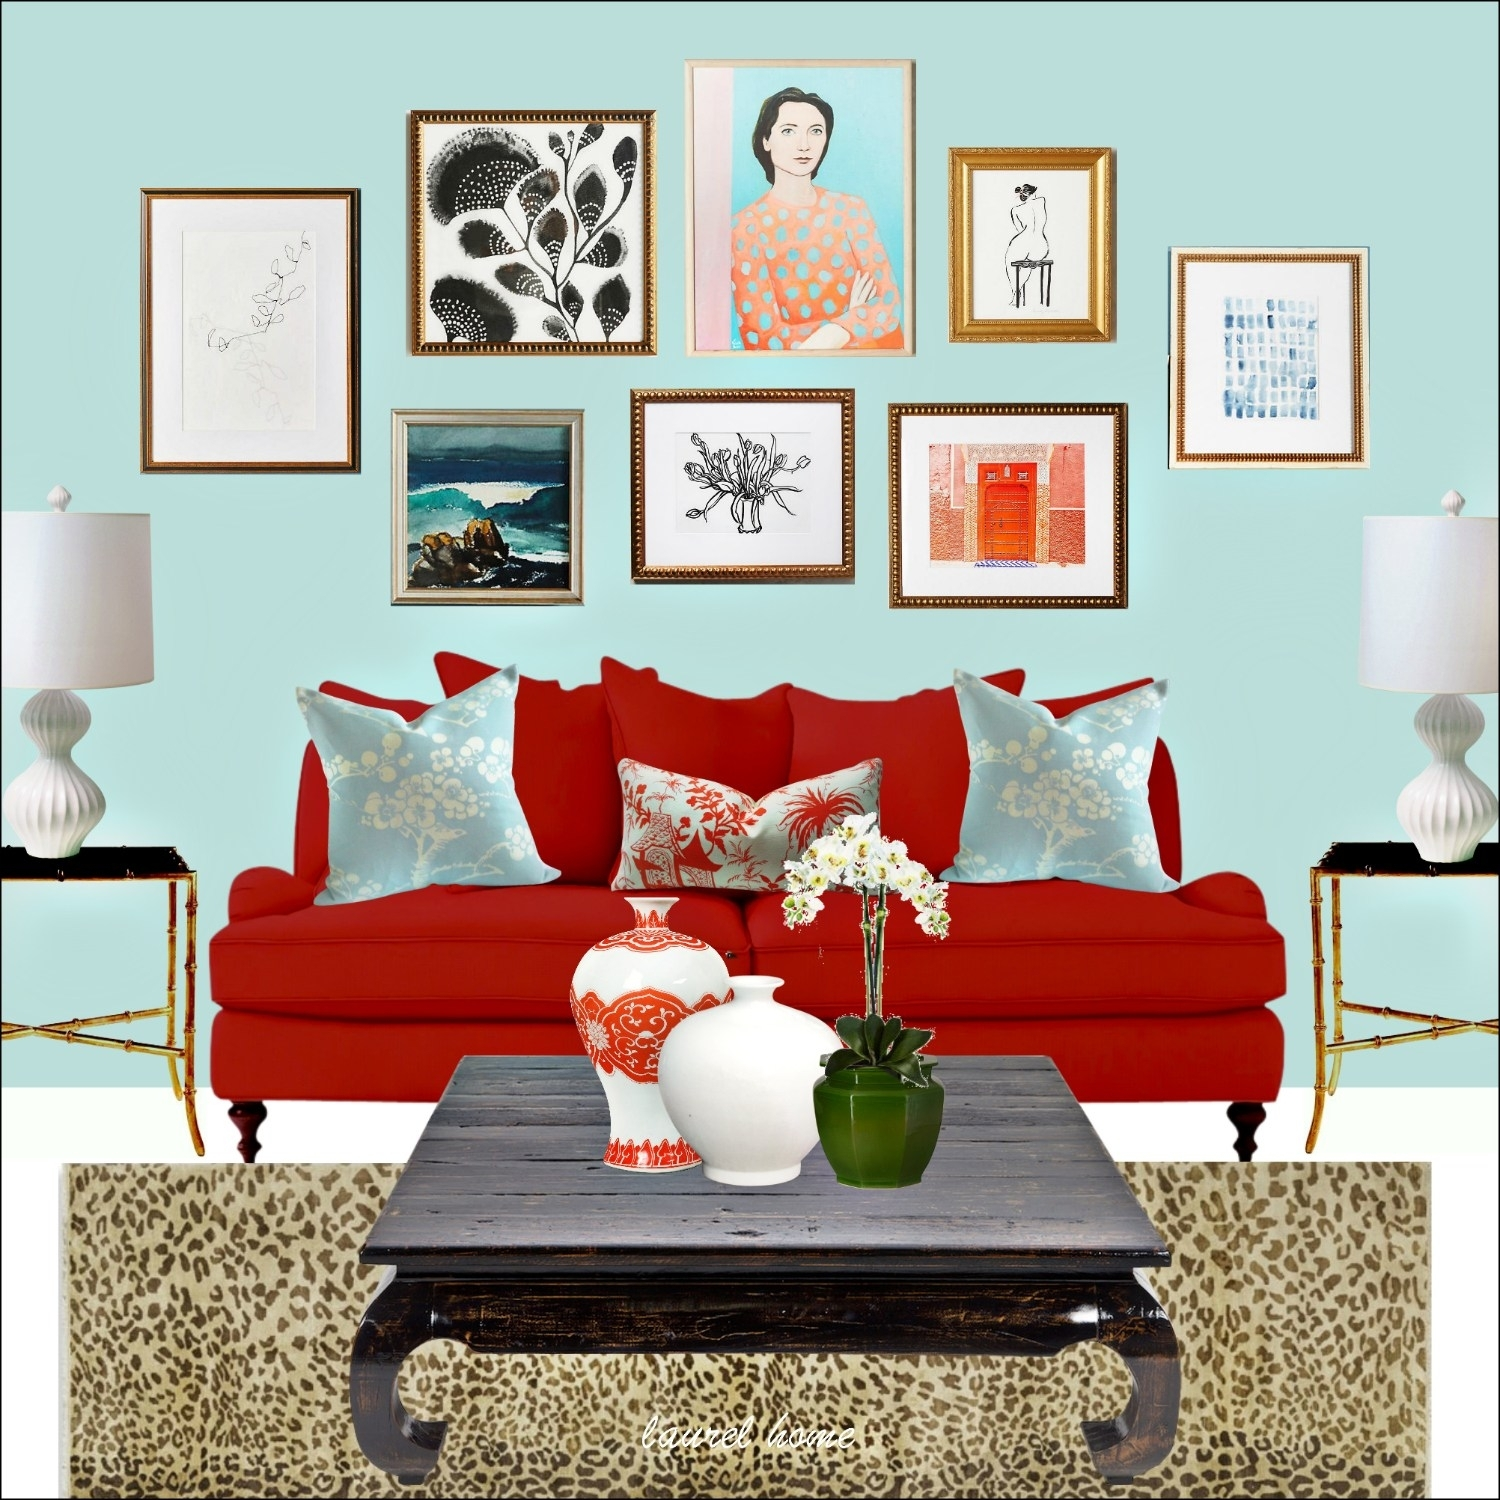 Anthropologie Art Wall With Artfully Walls Art And Red Sofa And In Most Recent Artfully Walls (View 2 of 15)